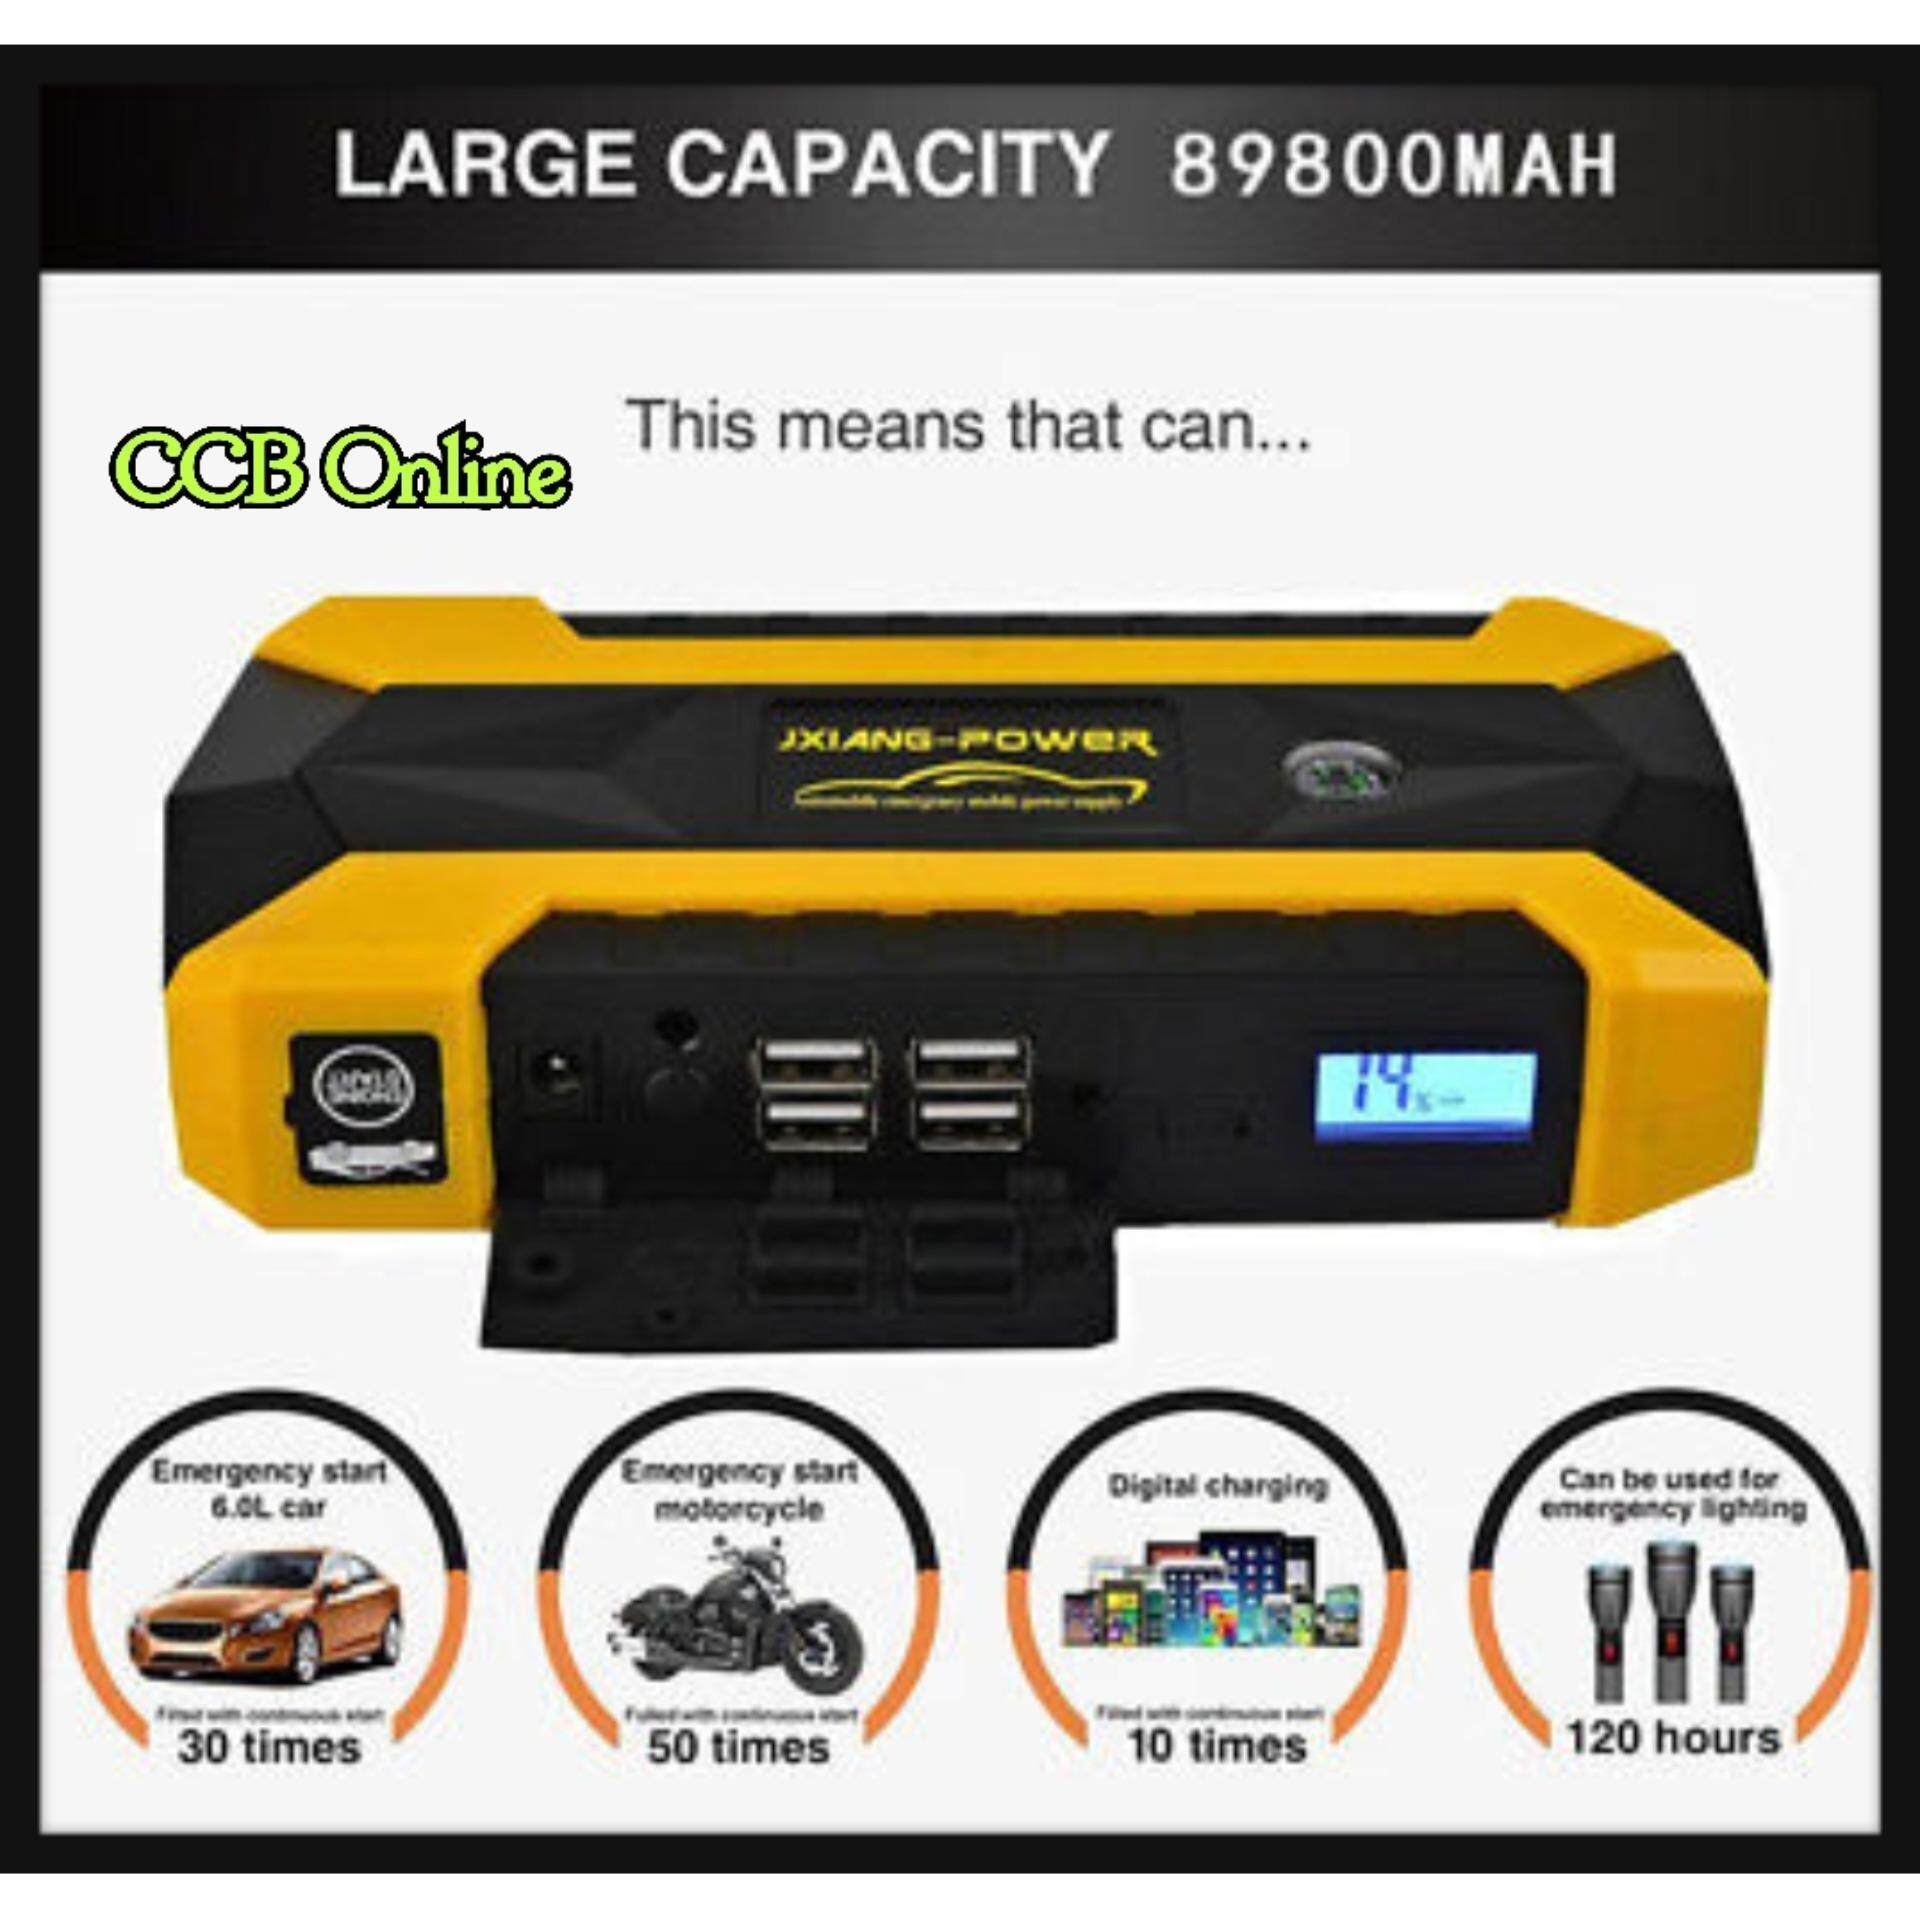 Jump Start Car Power Bank Jx29a (89800mah) & Emergency Mobile Power Supply (green,red,yellow) By Ccb Online.